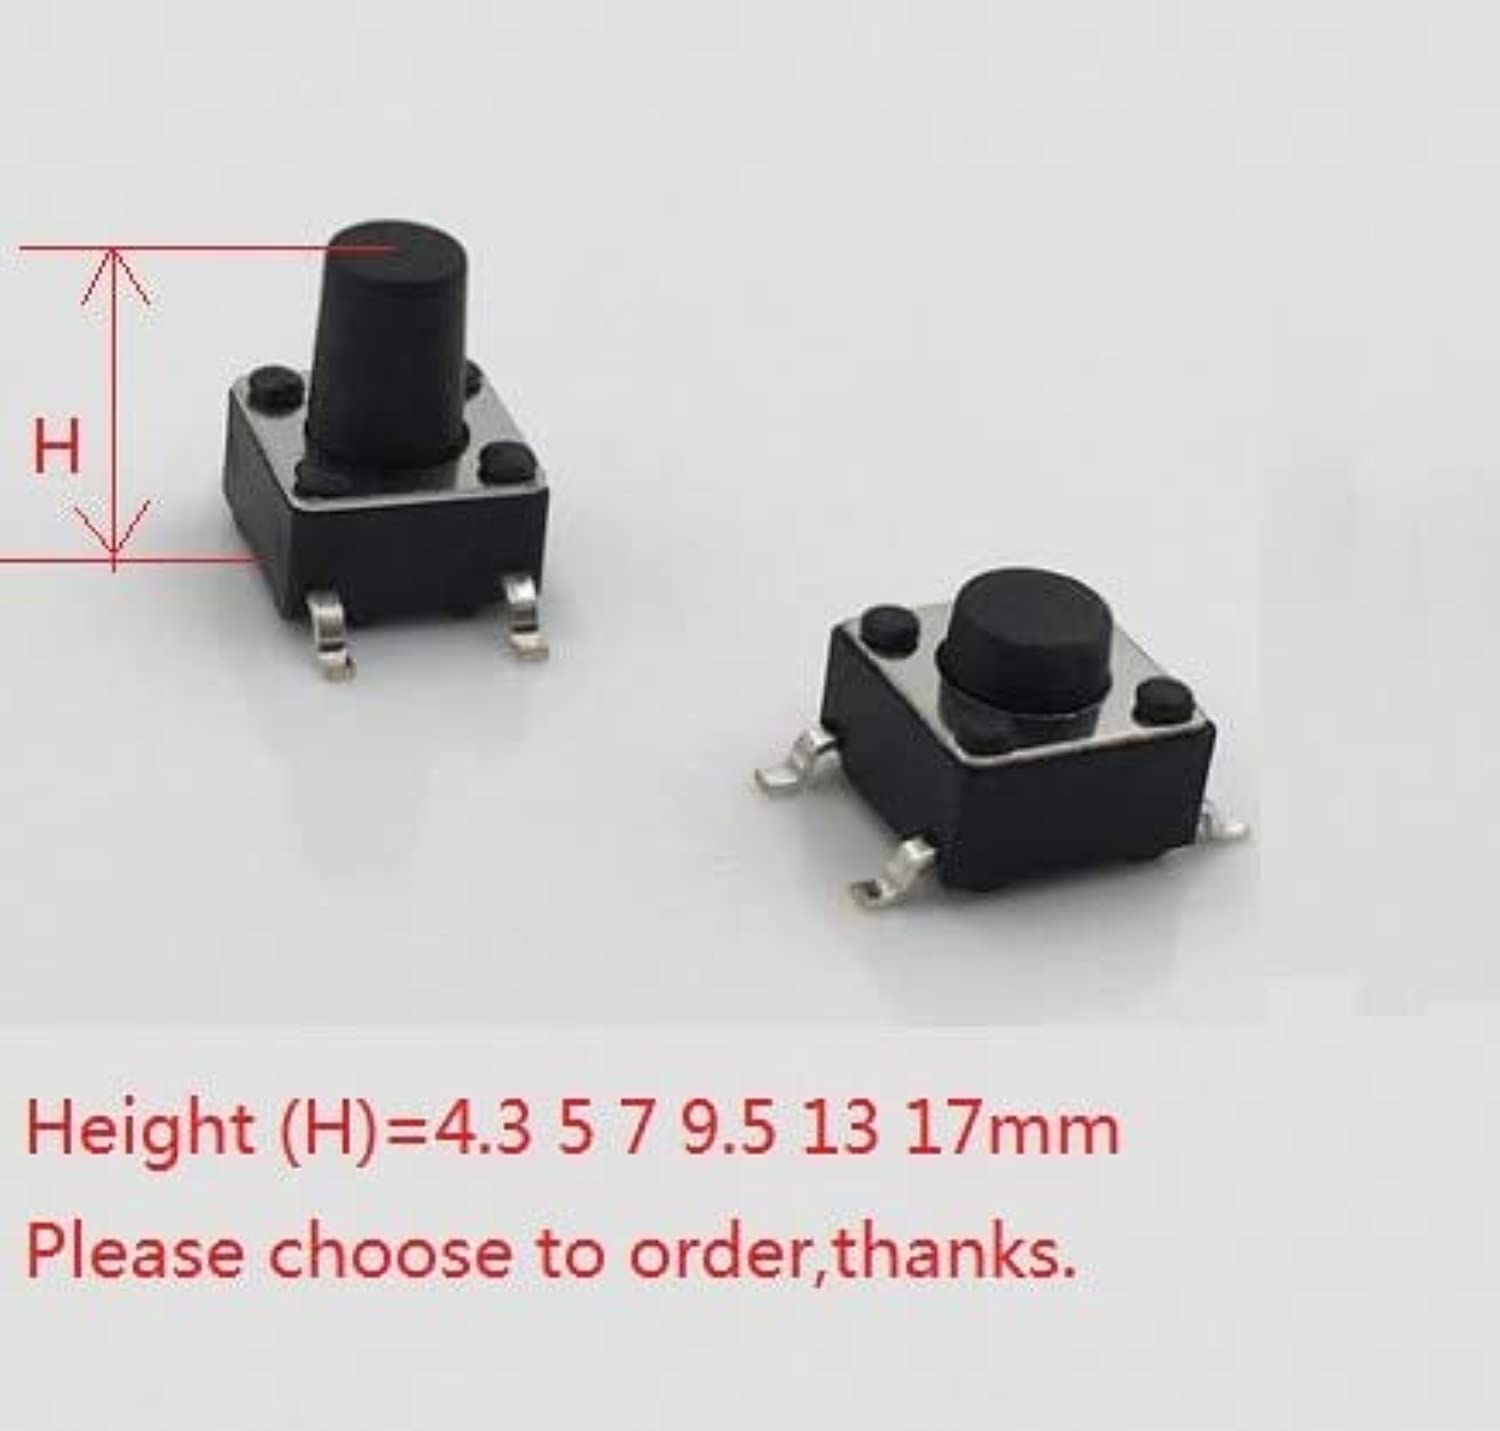 1000pcs 6x6 mm Tactile Switch SPSTNO Top Actuated Surface Mount 6.0mm x 6.0mm Height 4.3 5 7 9.5 13 17 mm 250gf Gull Wing SMT  (color  Height 5.0 mm)